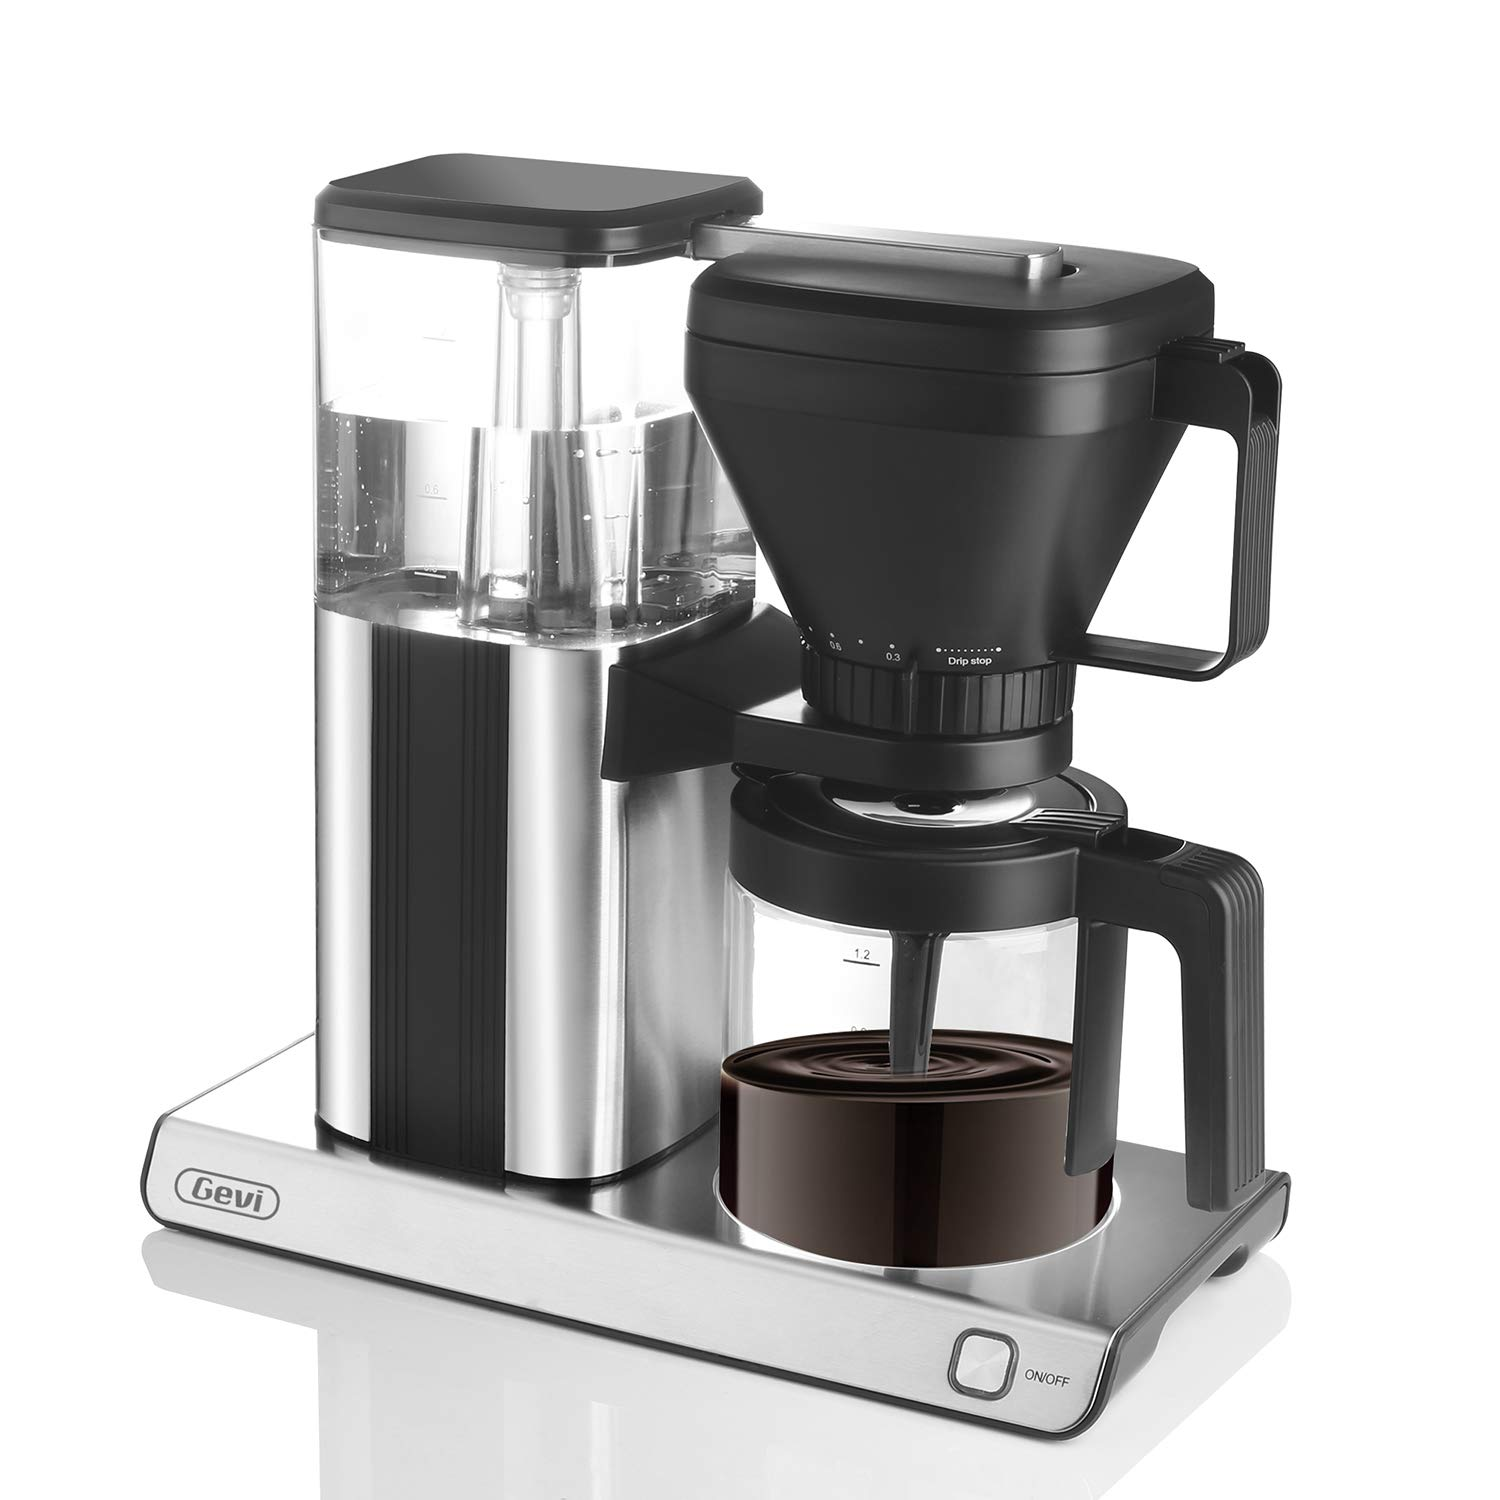 Gevi 10 Cup Coffee Maker Adjustable Brew Weak or Strong Coffee Come with Glass Carafe